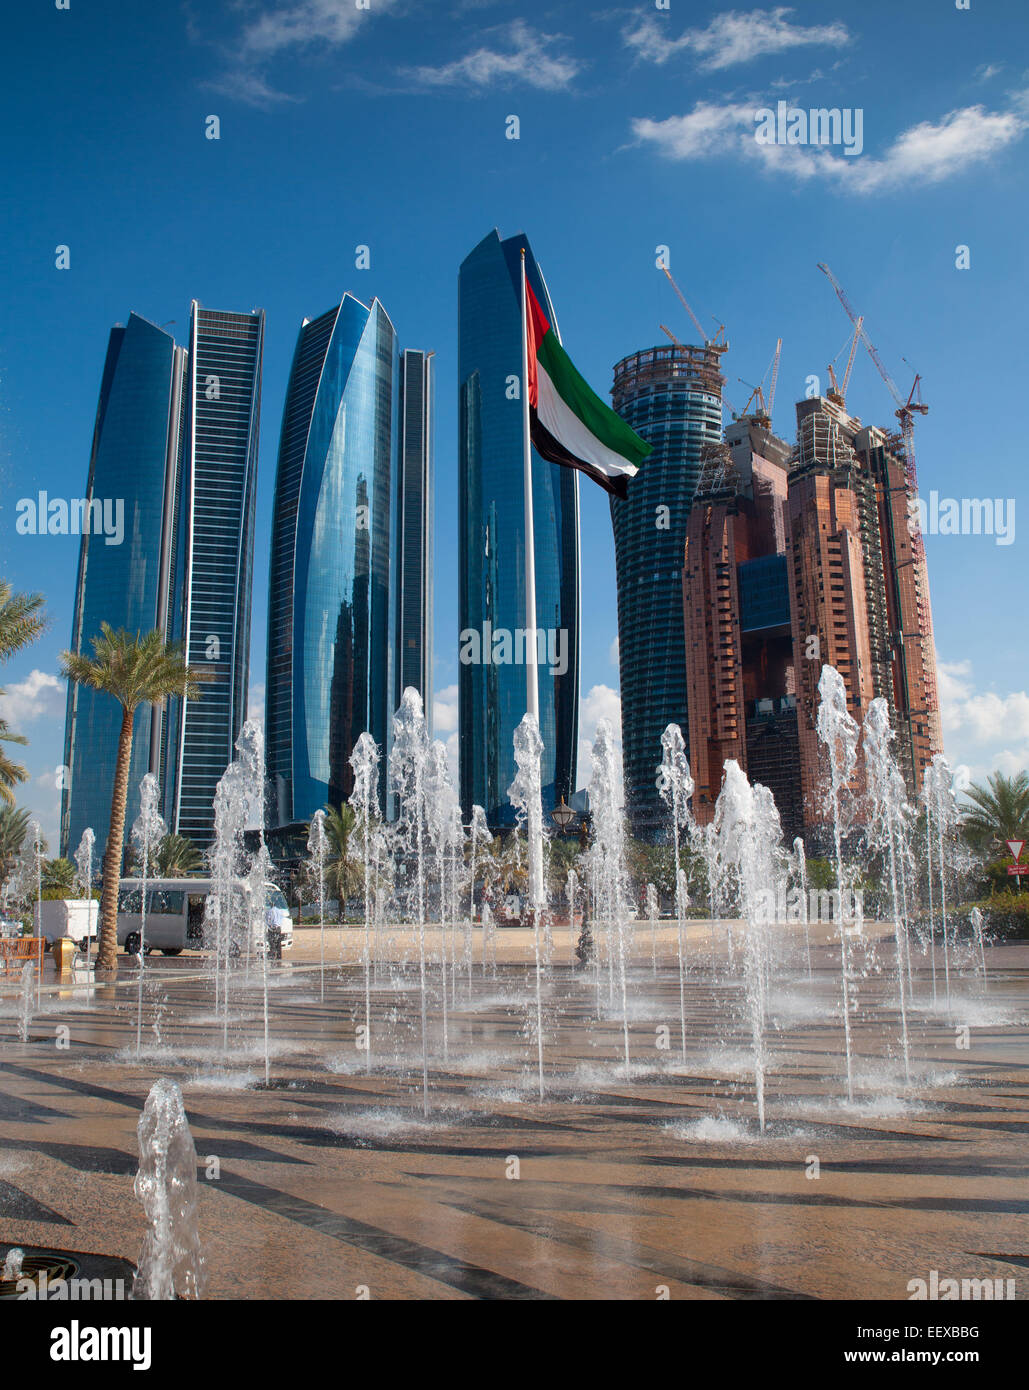 Skyscrapers of modern Abu Dhabi, capital of United Arab Emirates Stock Photo, Royalty Free Image ...